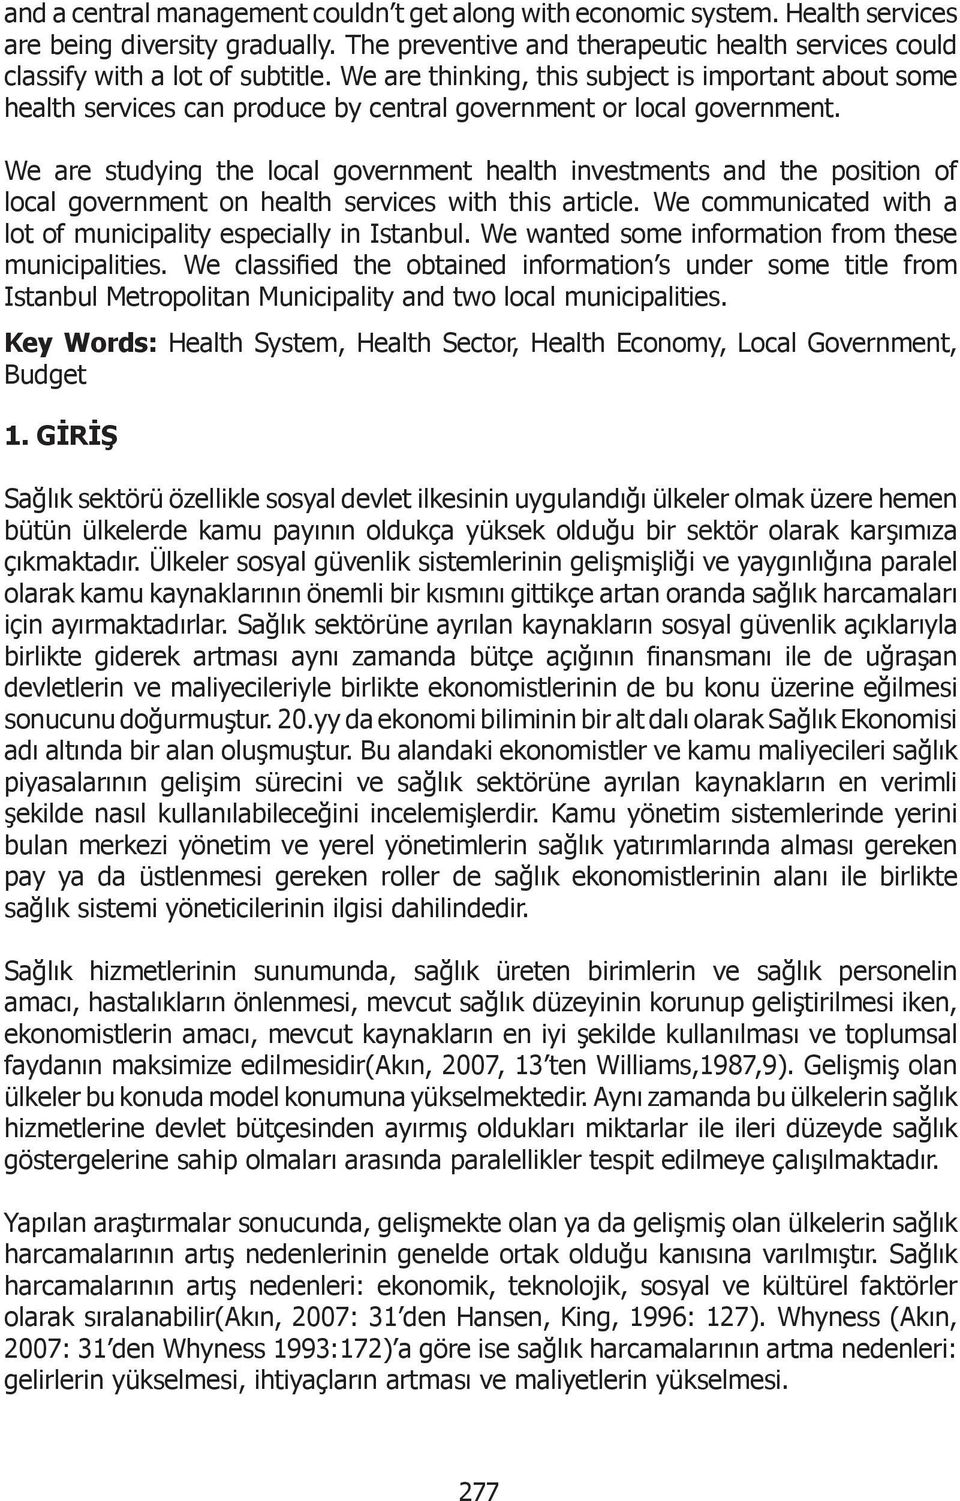 We are studying the local government health investments and the position of local government on health services with this article. We communicated with a lot of municipality especially in Istanbul.